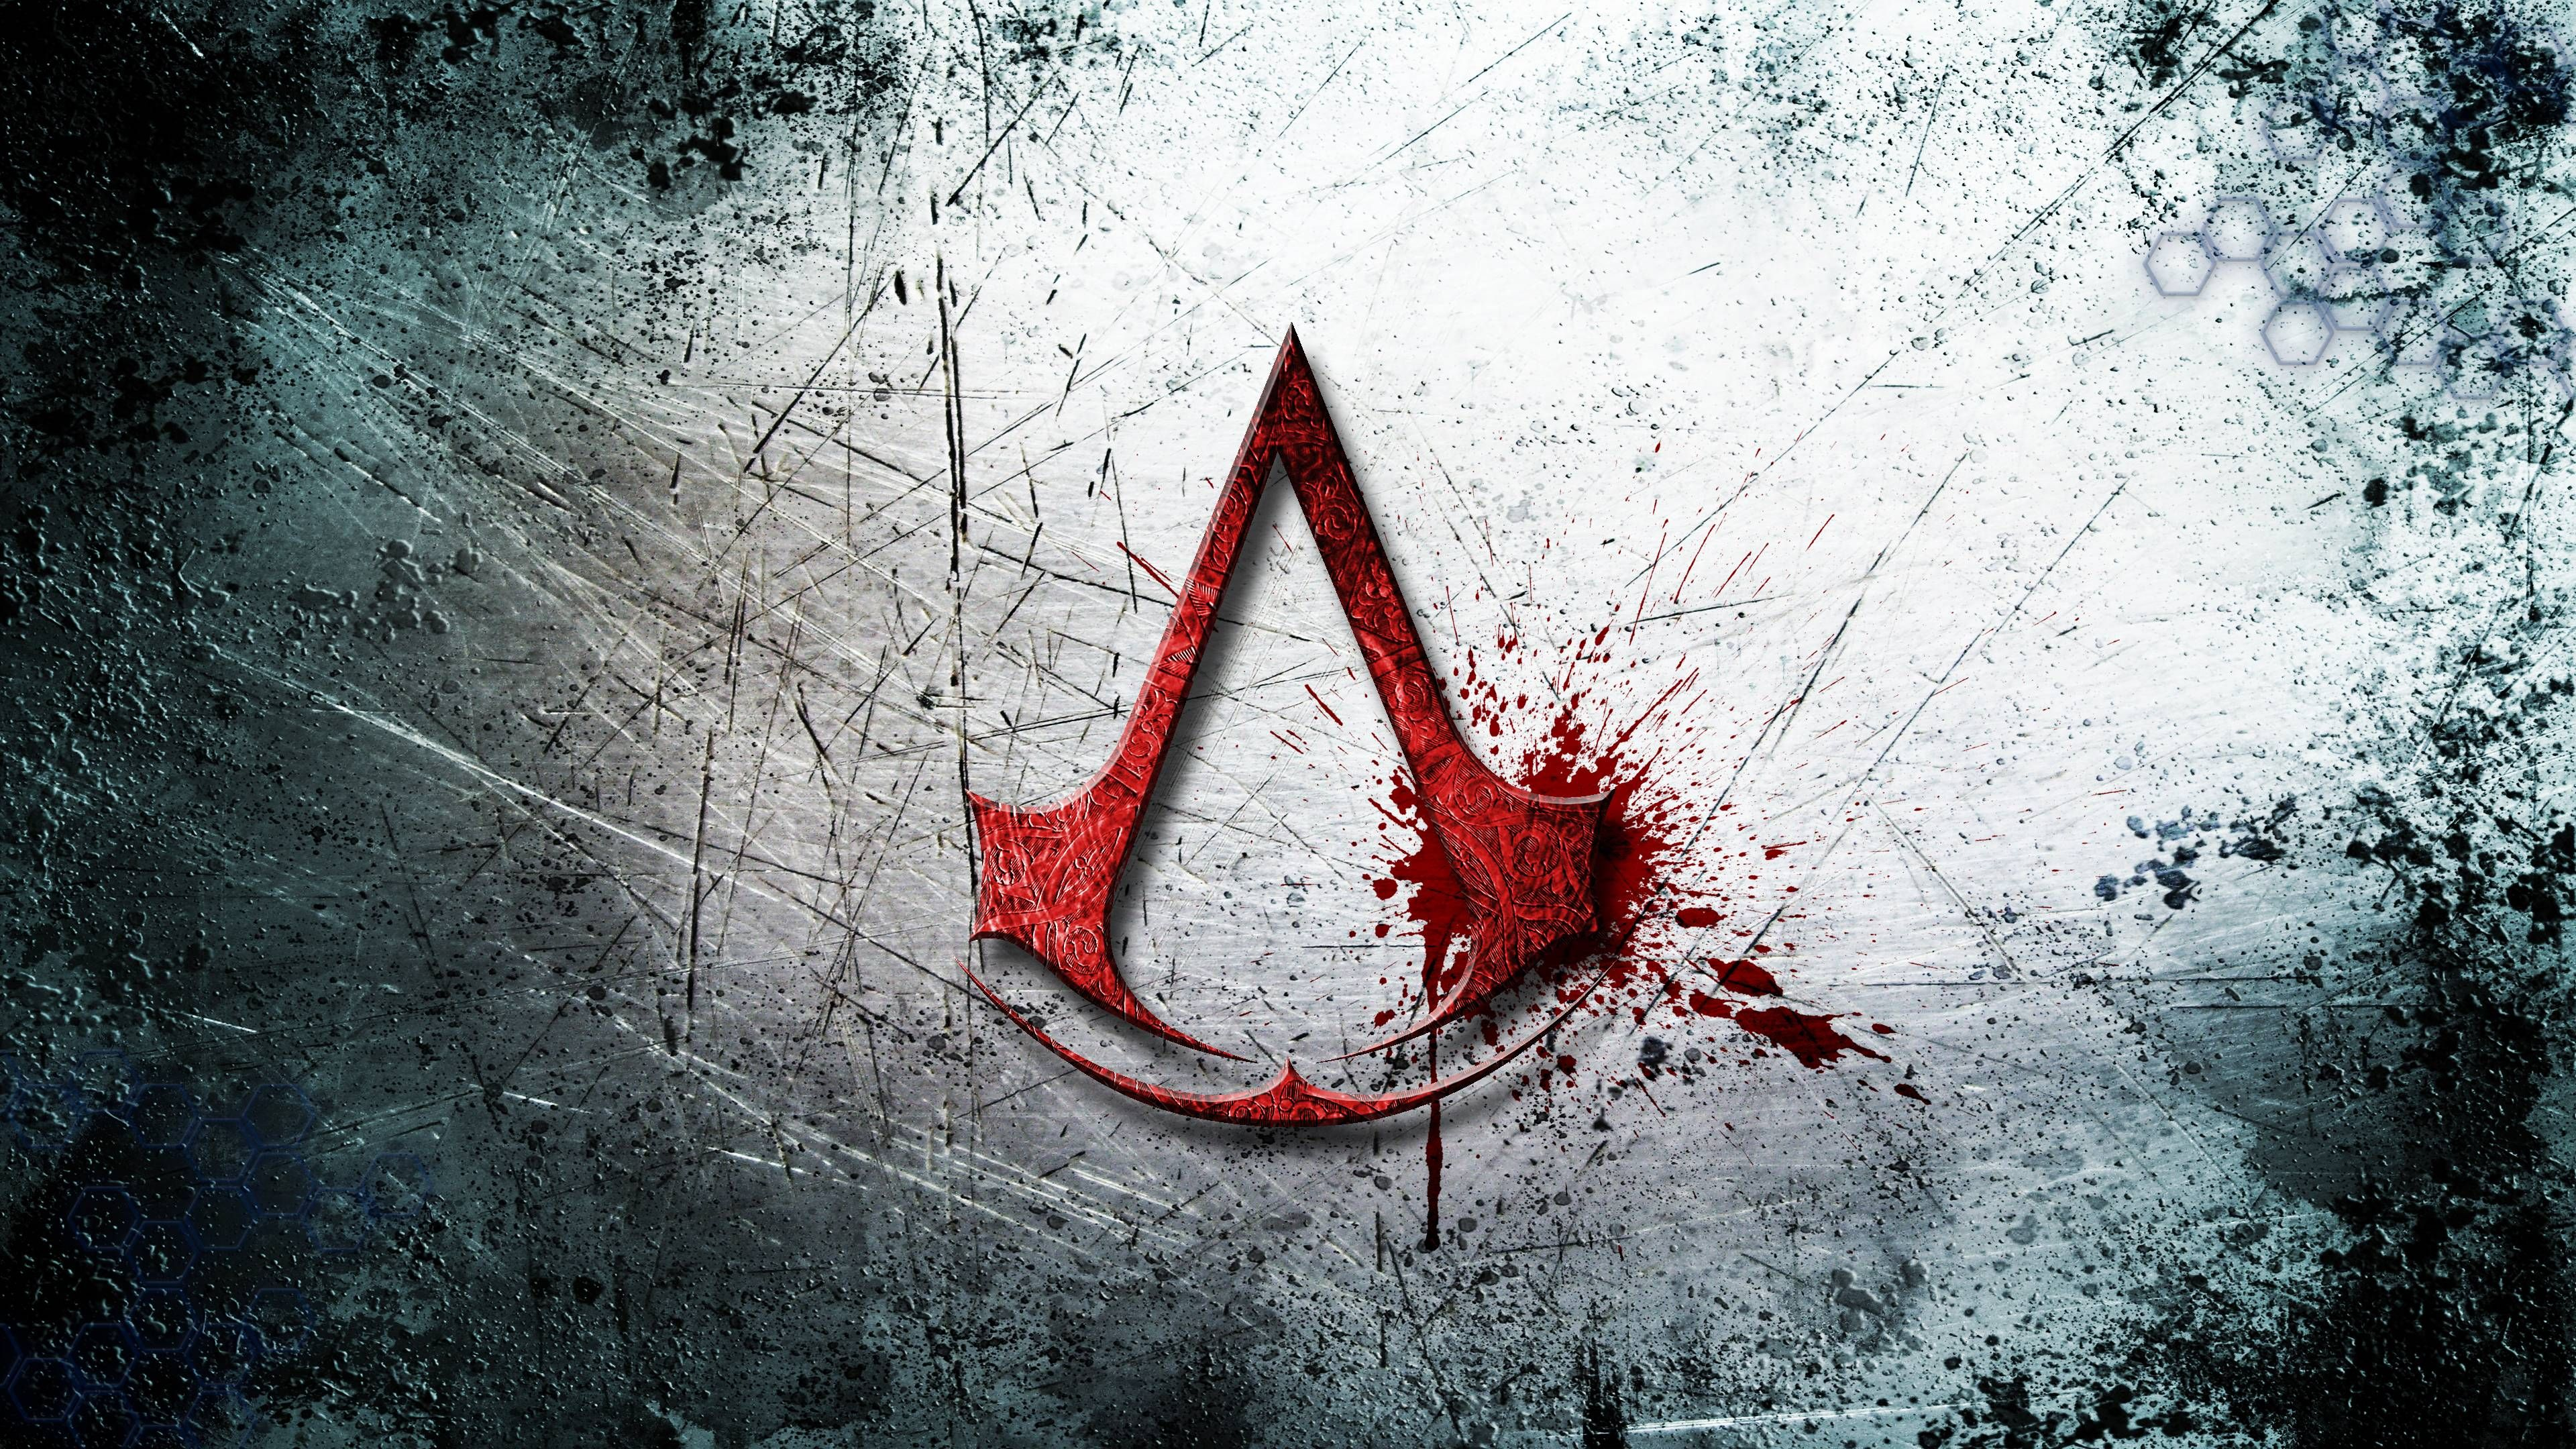 Assassins Creed Wallpaper 3840x2160 ID39572